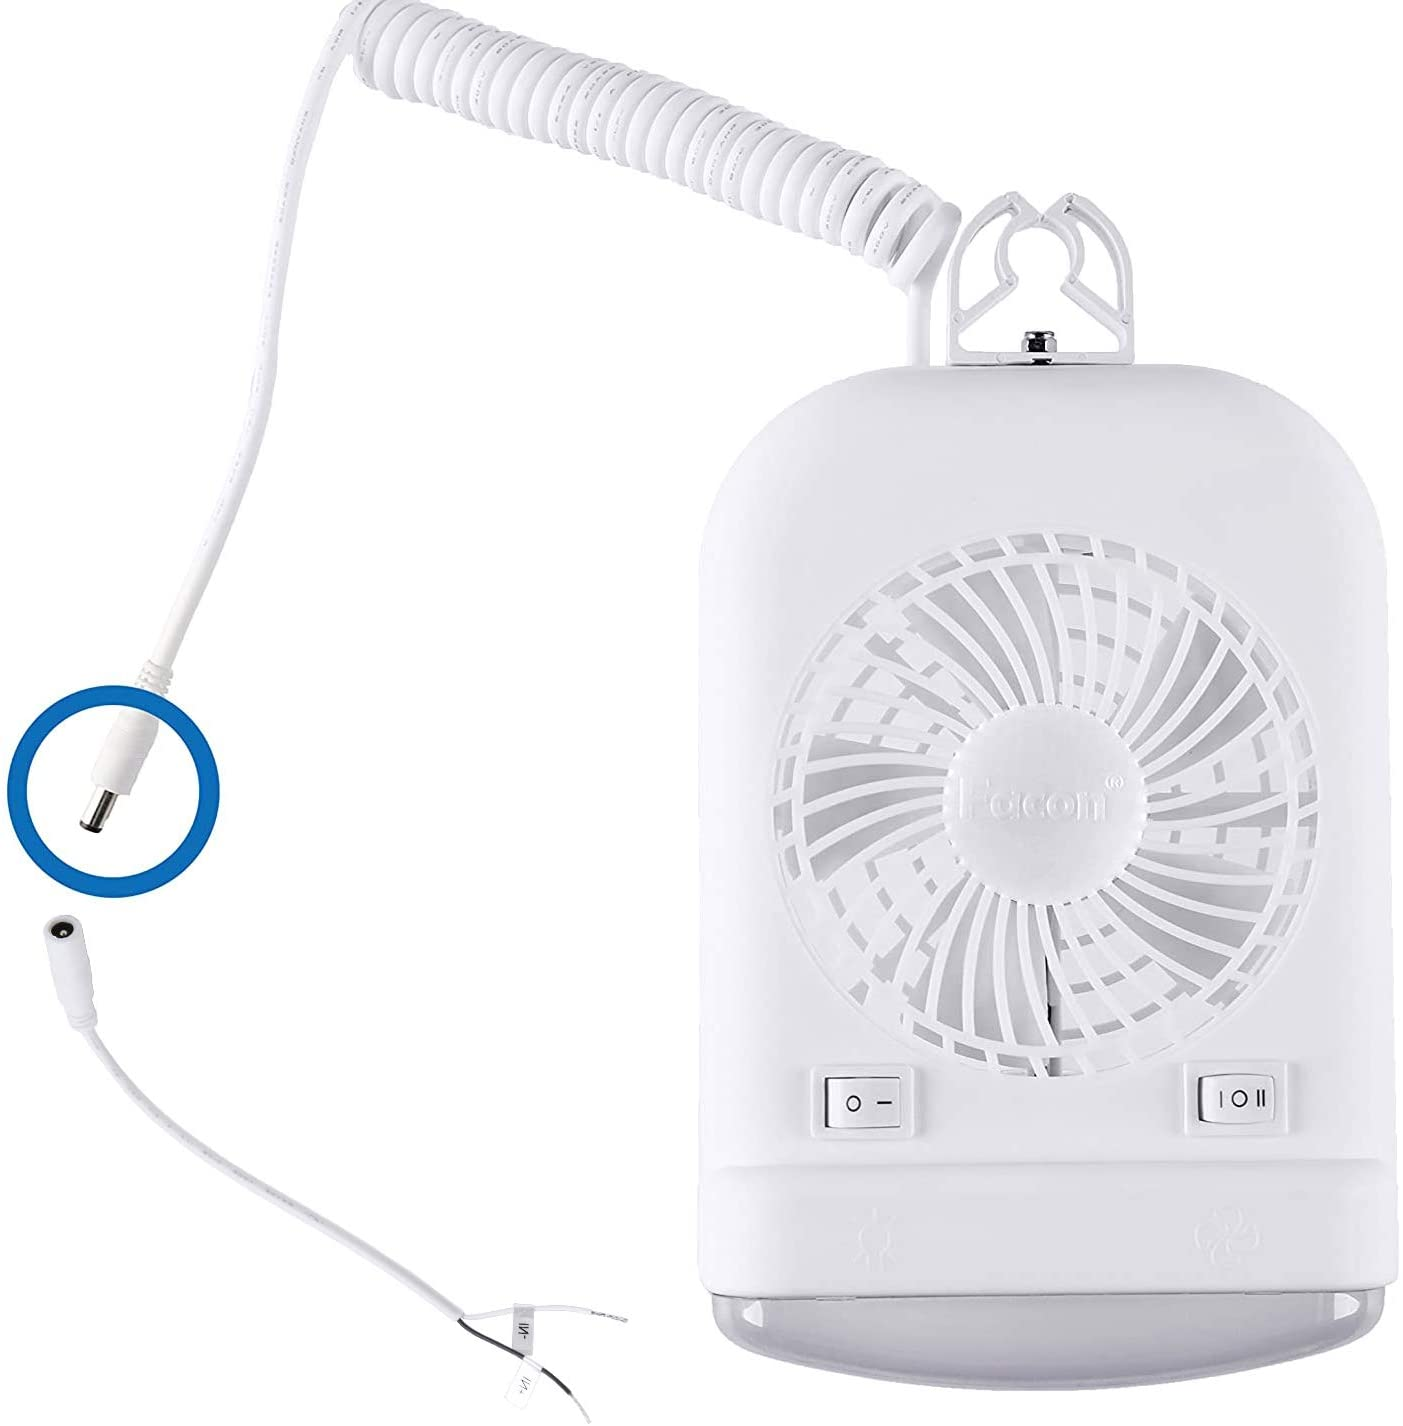 Facon 12 Volt RV Camper Fan and LED Light Combo, High Intensity Reading Light with Holding Bracket and On&Off Switch